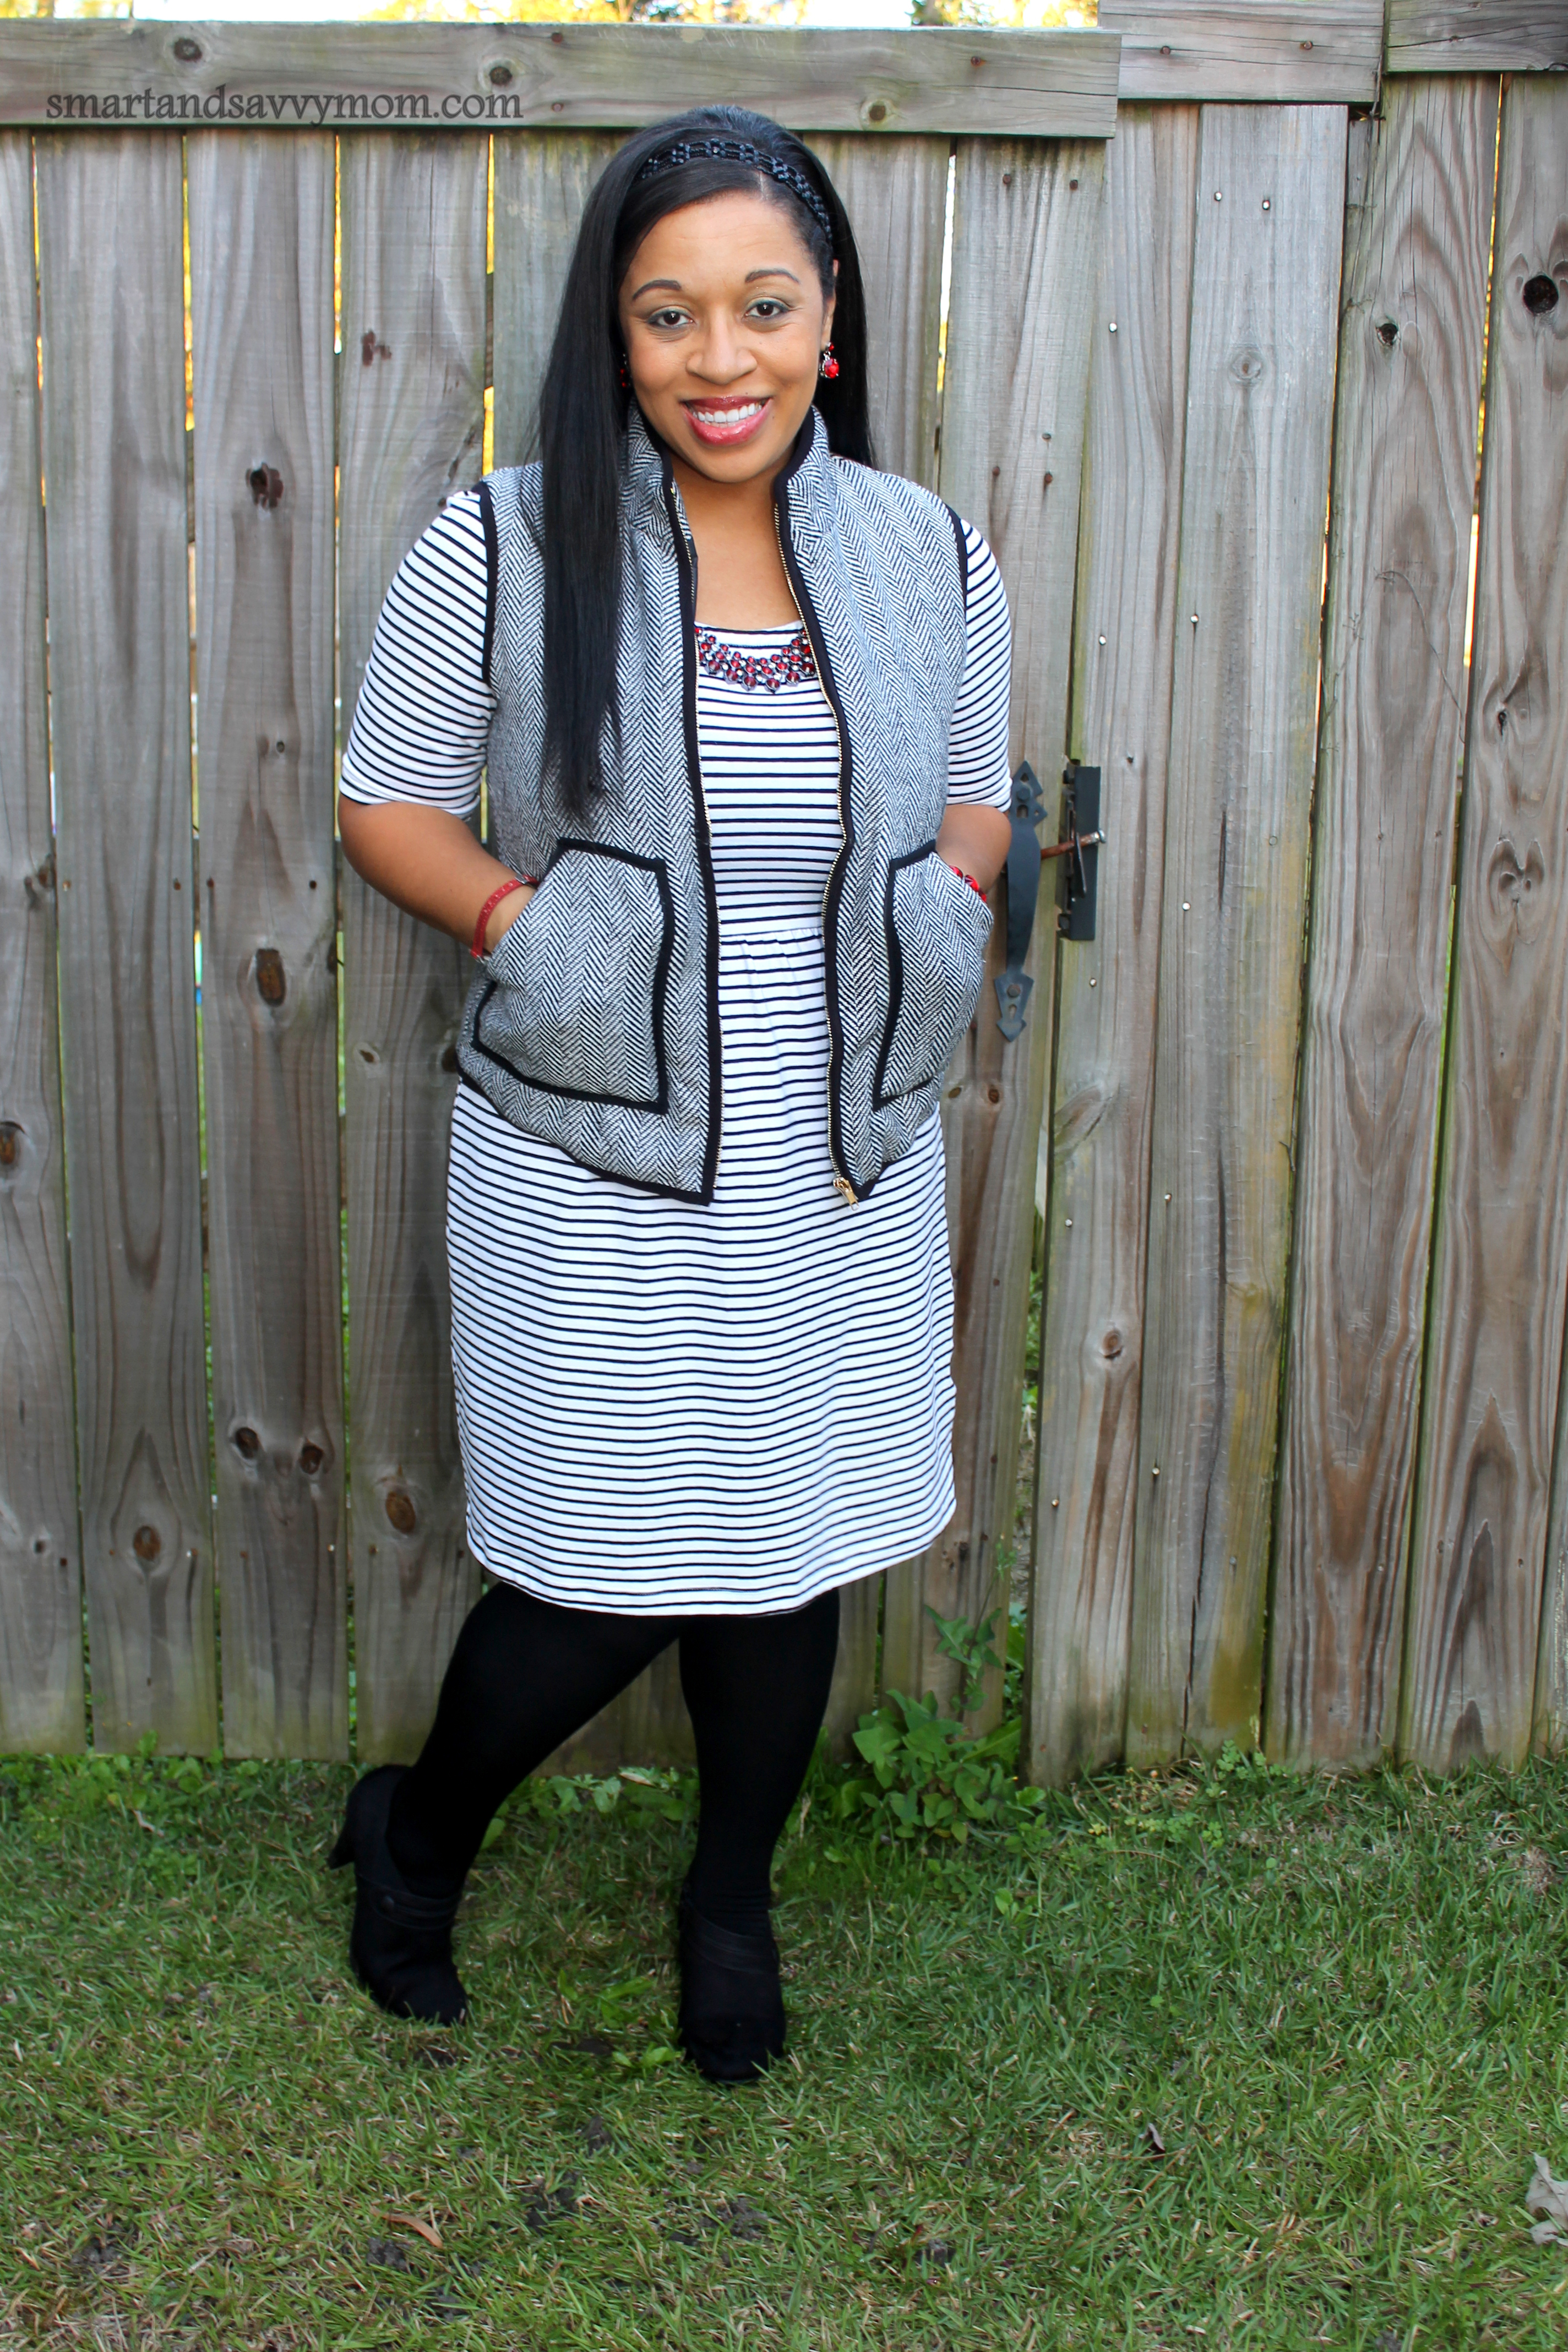 herringbone vest with black and white striped knee length dress from old navy modest outfit idea